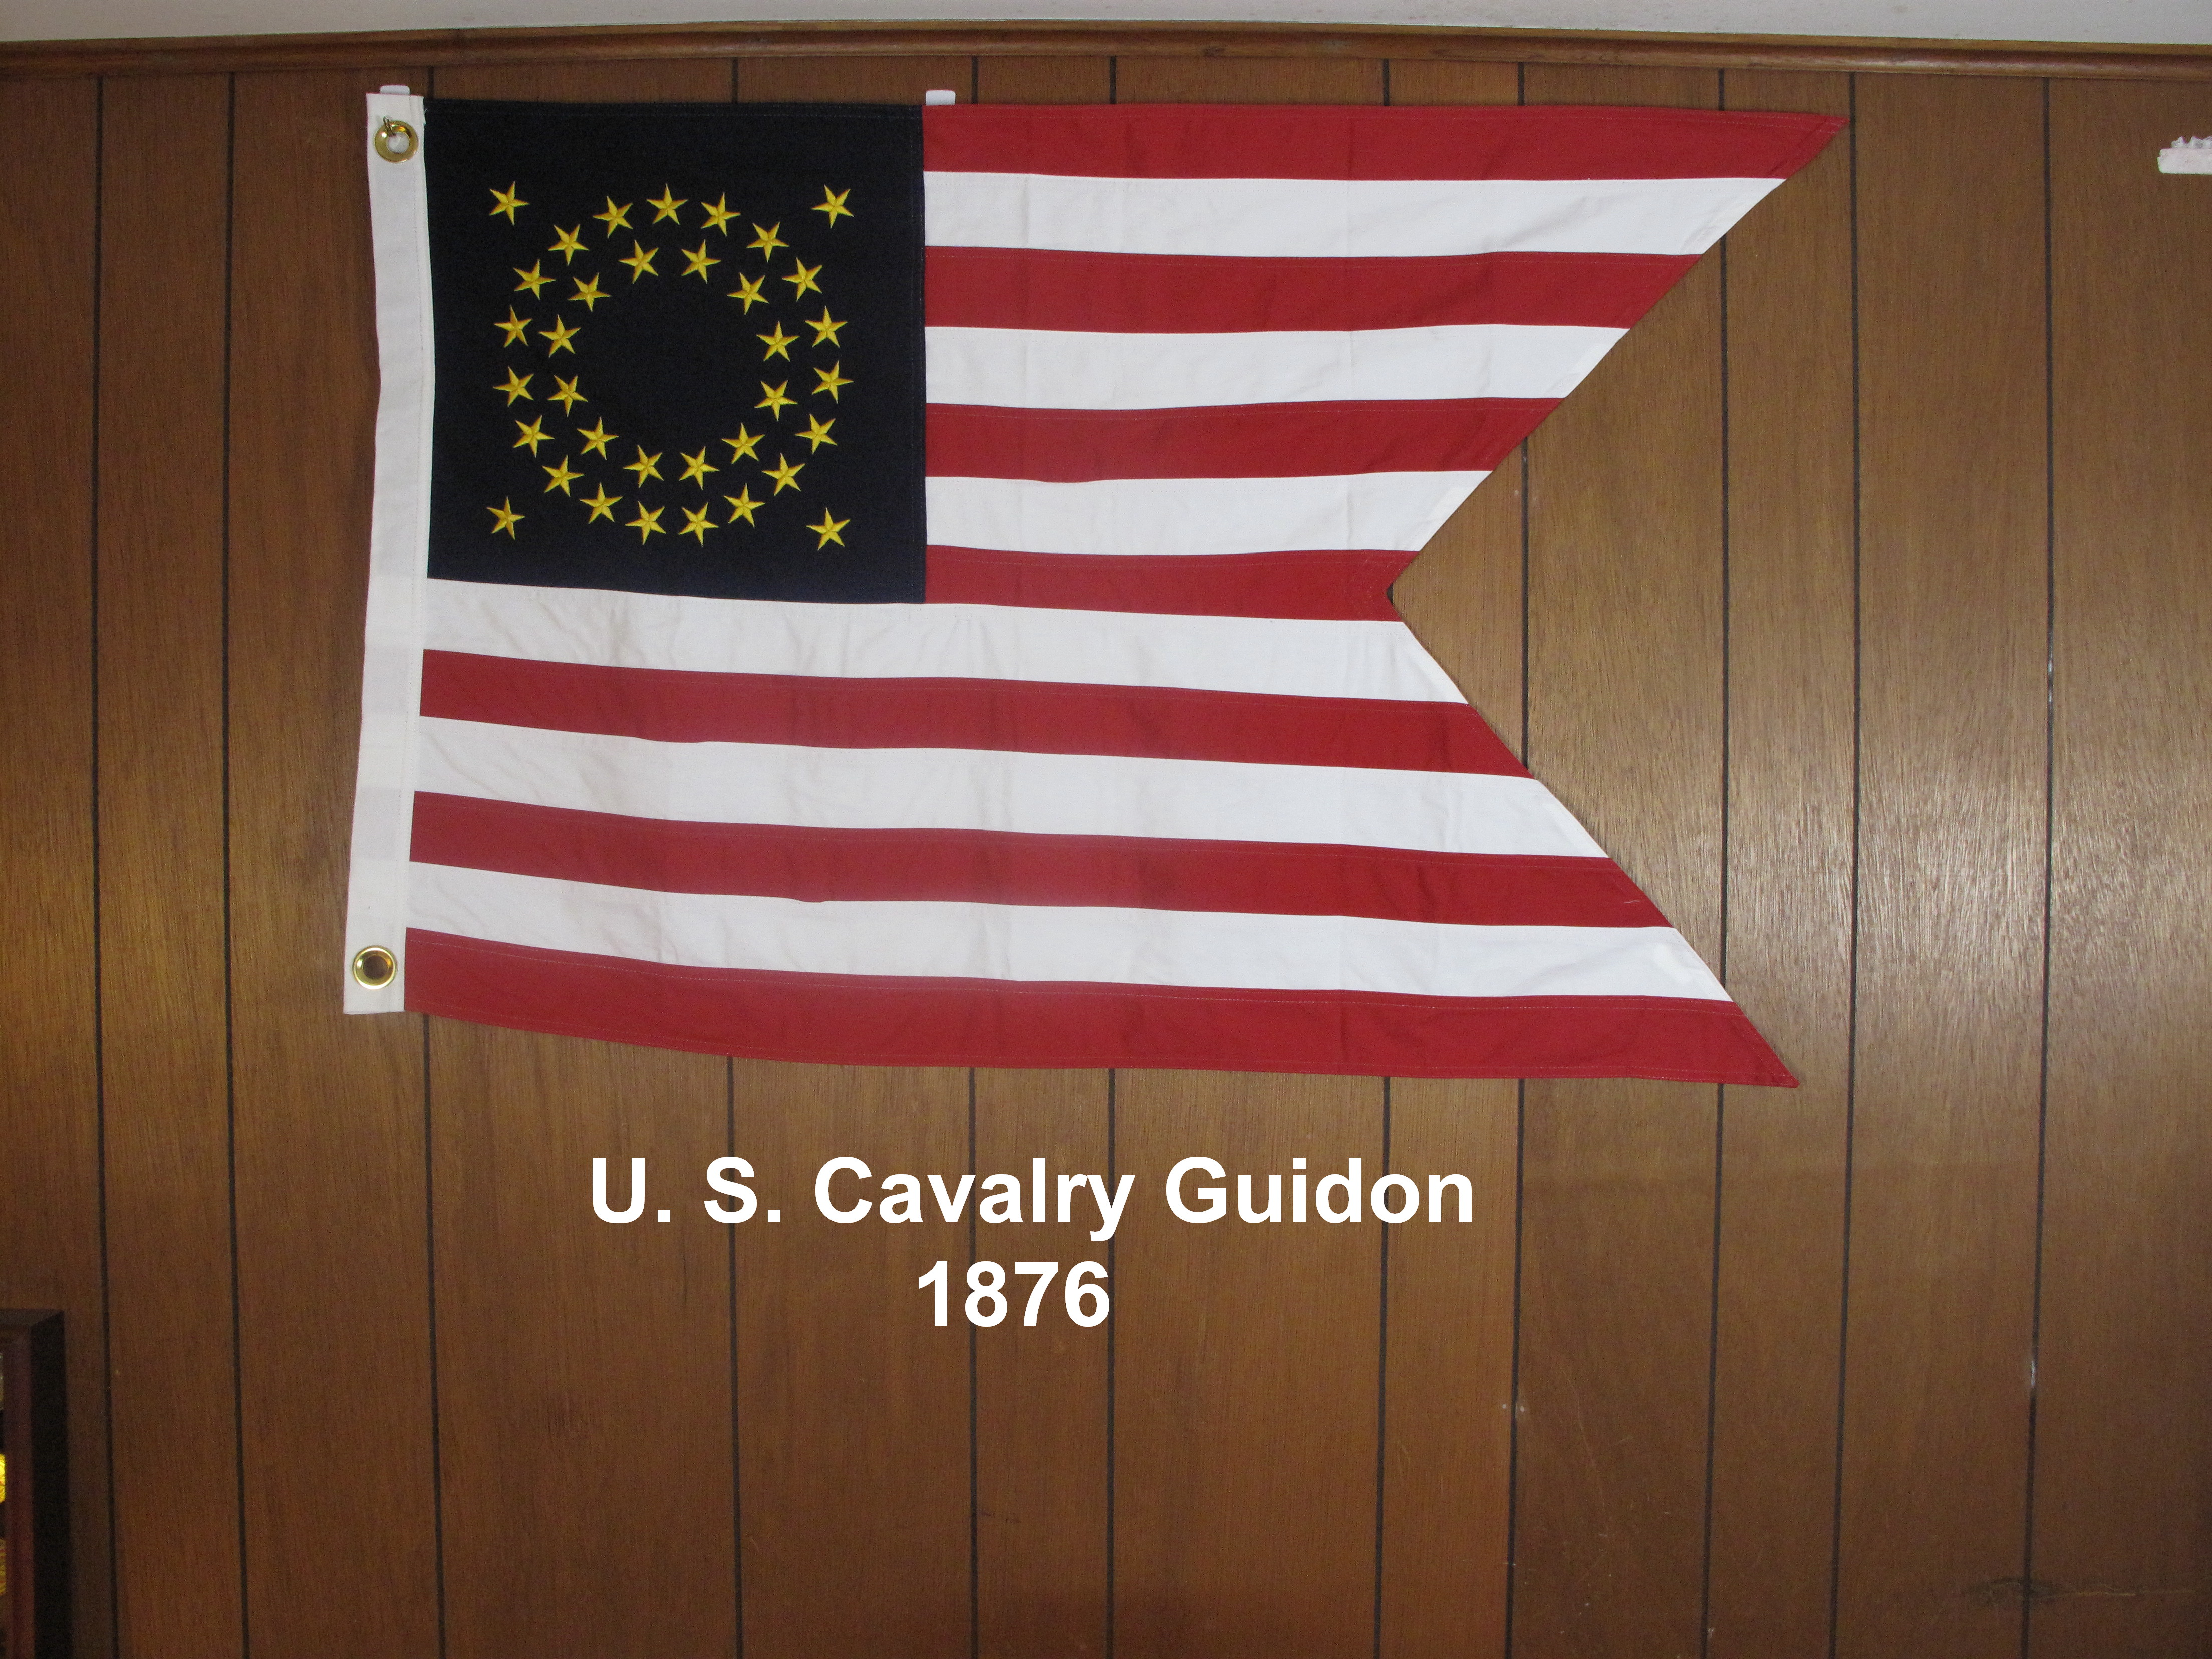 U.S. Cavalry Guidon 1876